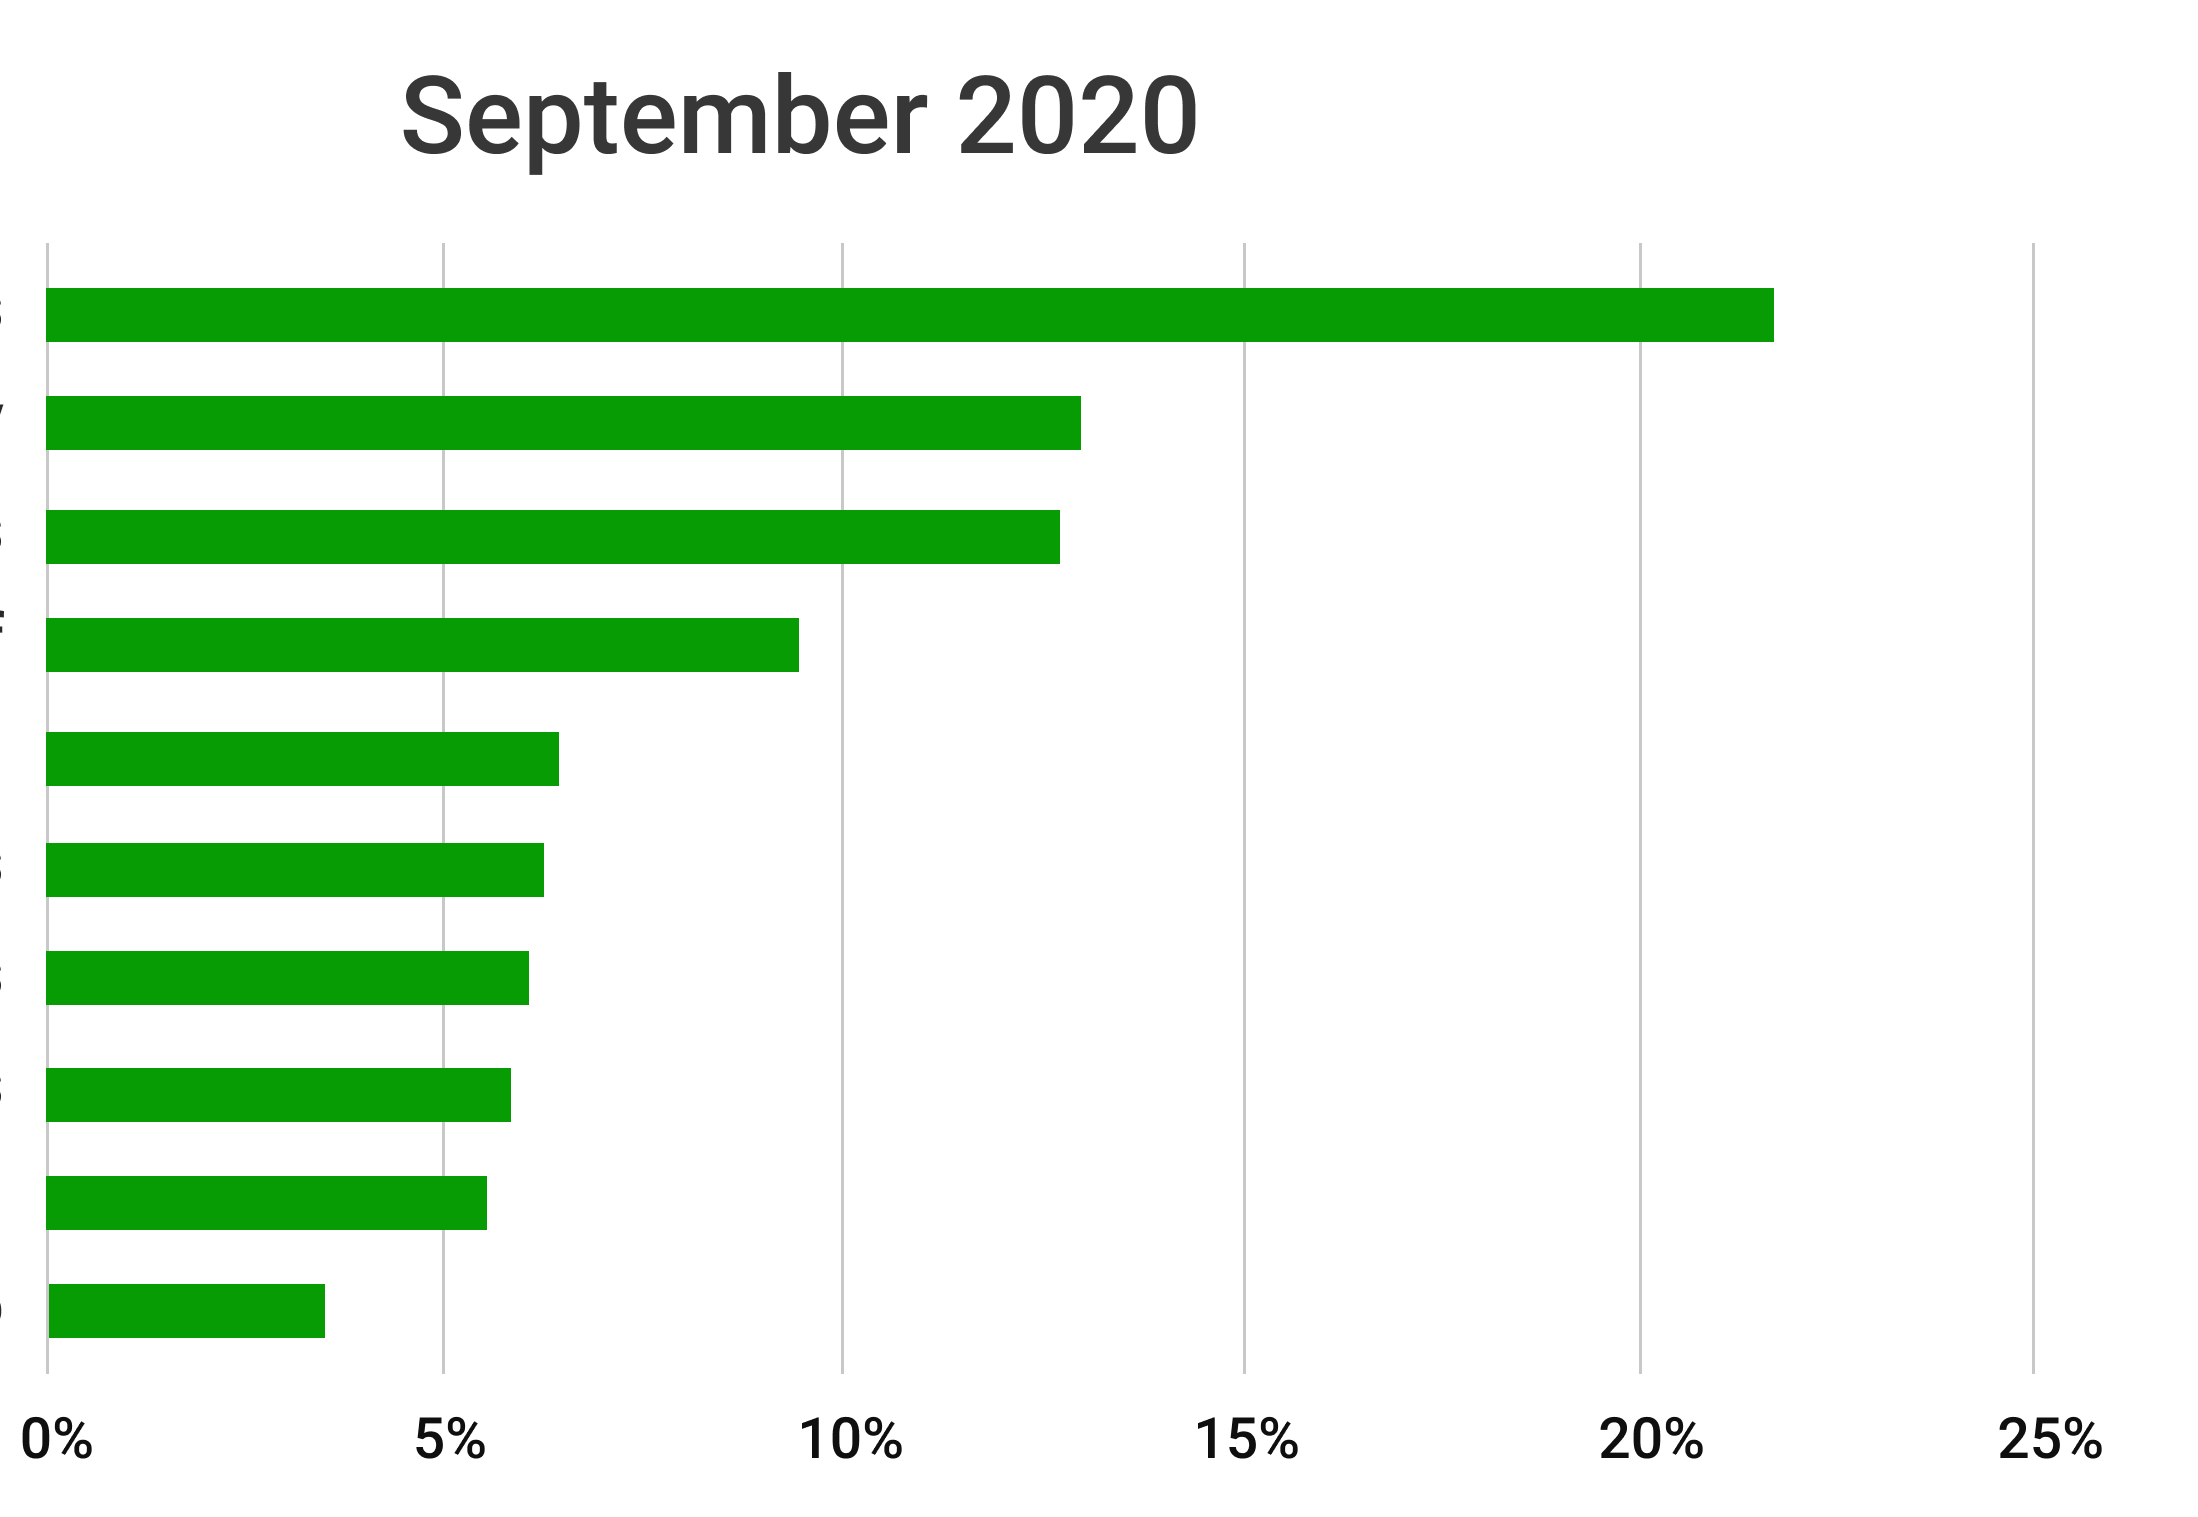 September 2020, most popular golf betting games in Beezer Golf